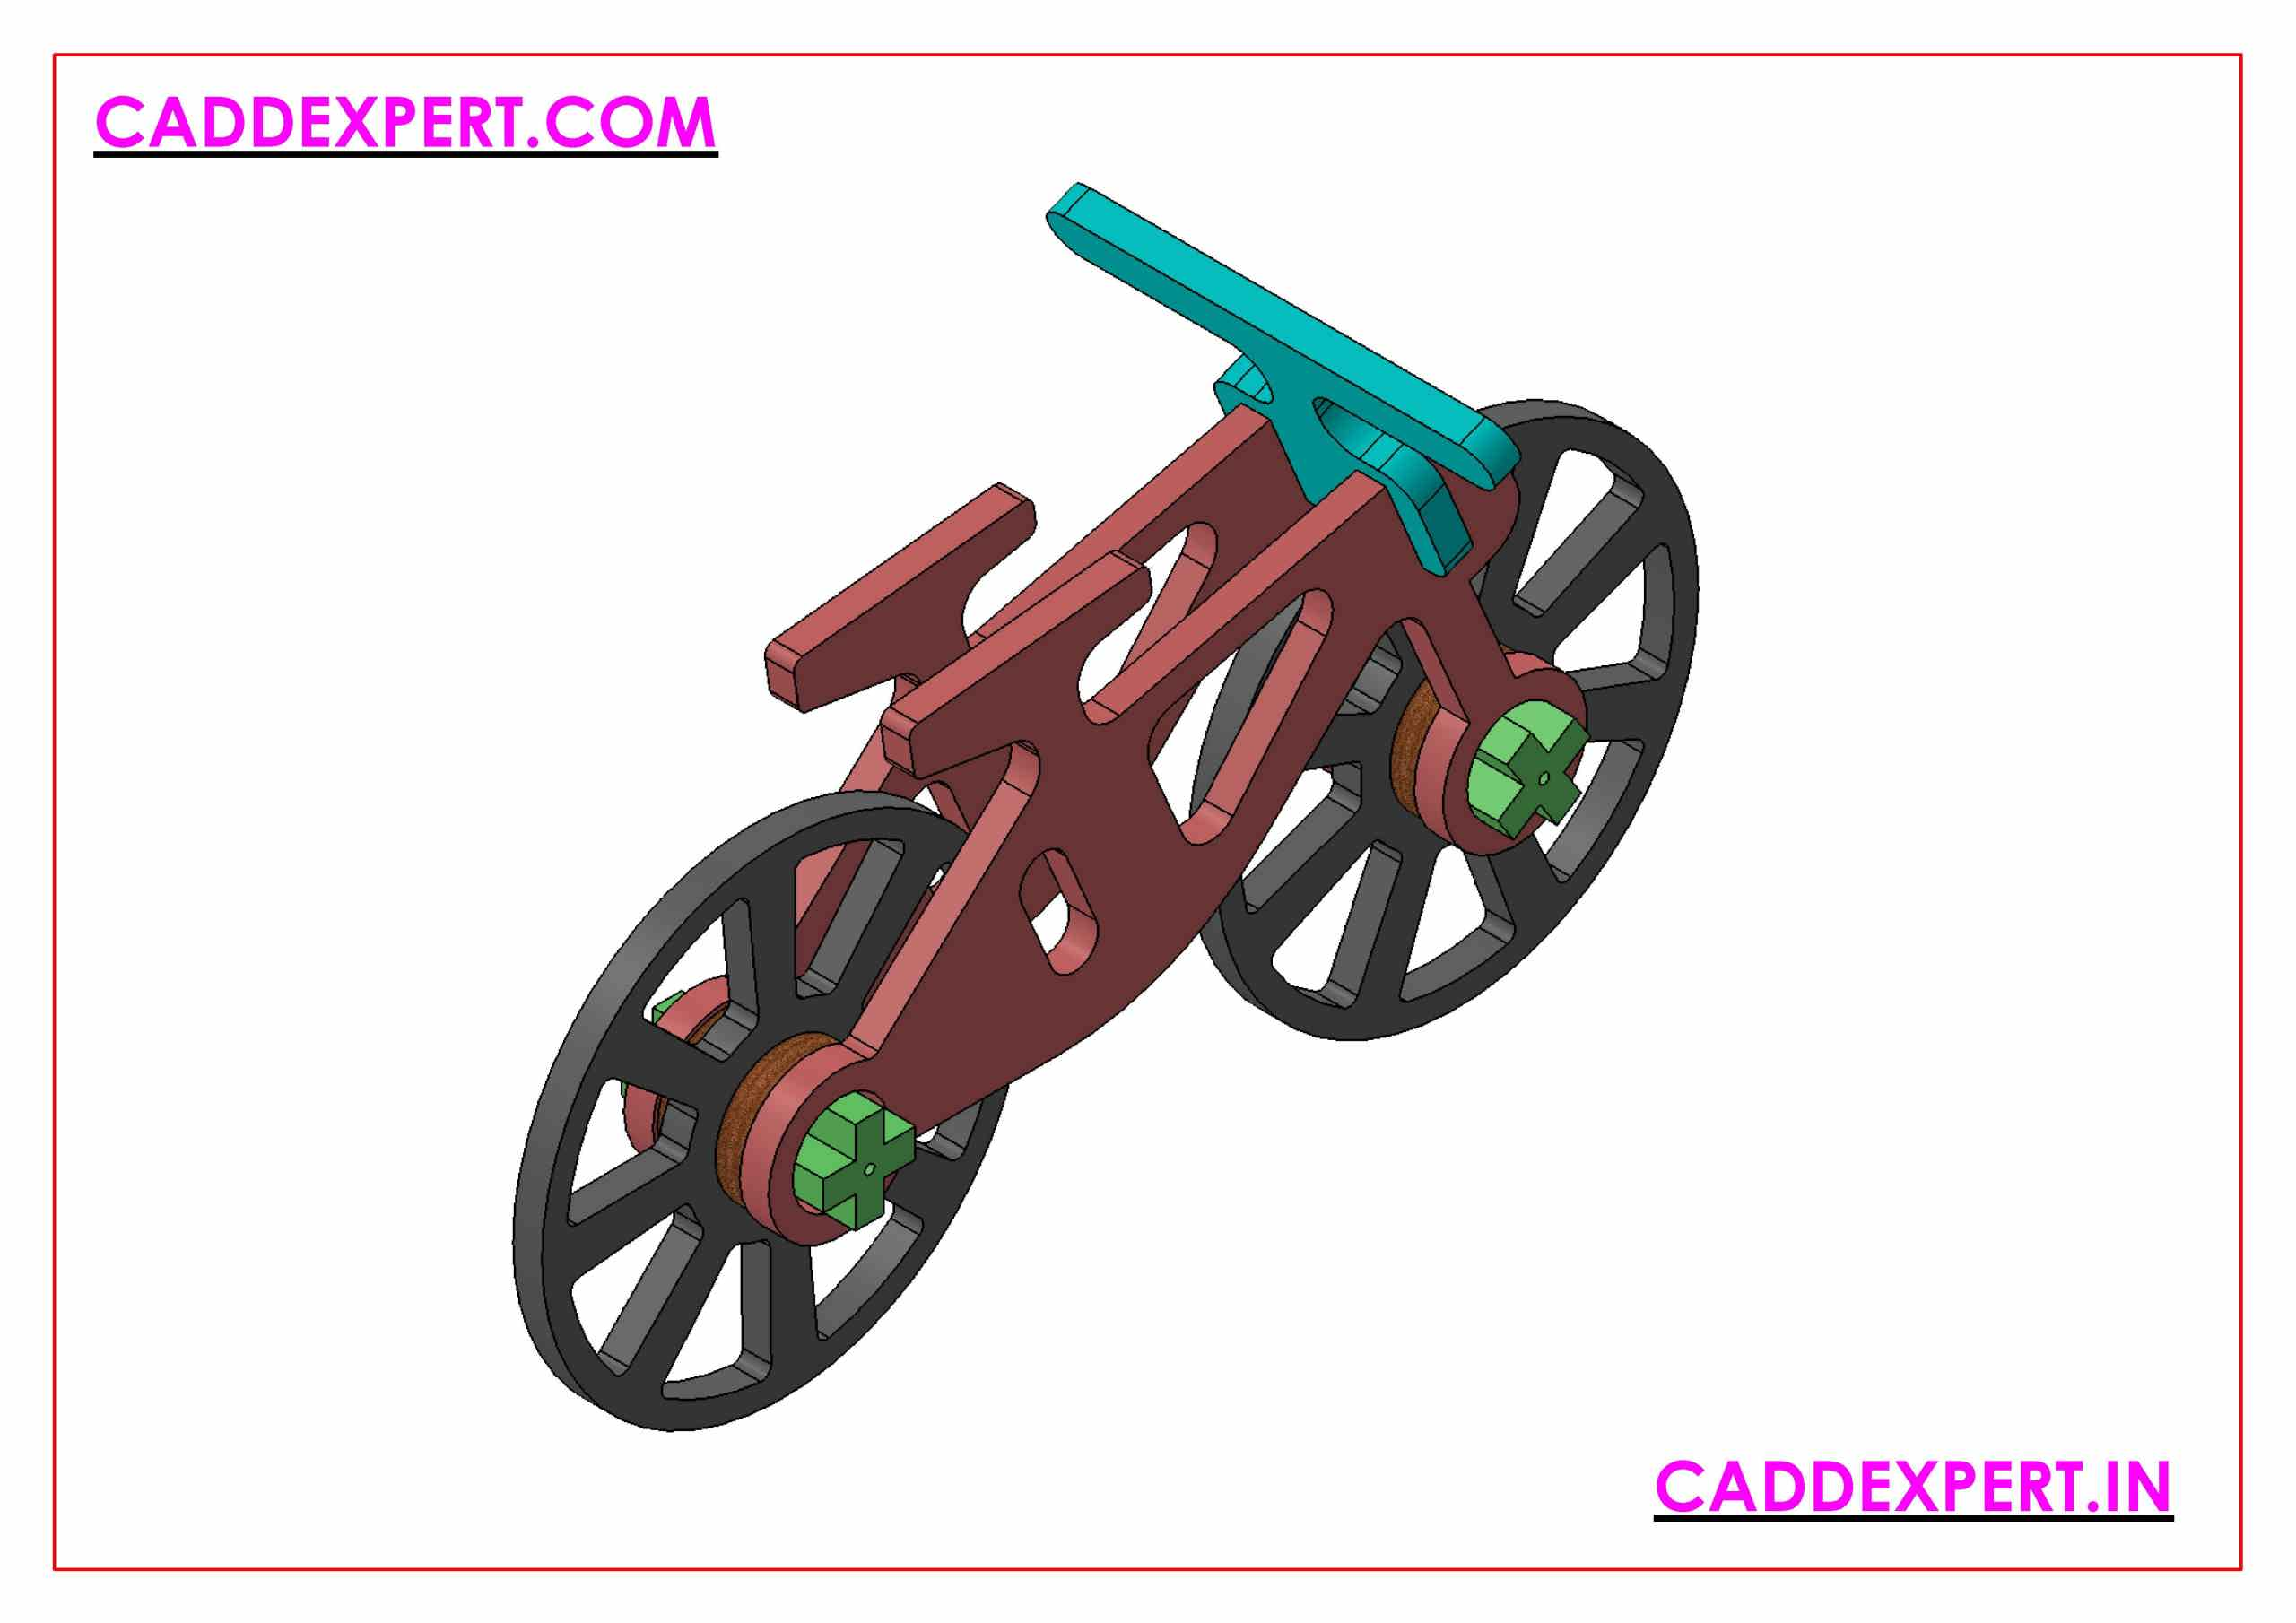 SOLIDWORKS AND CATIA ASSEMBLY ISOMETRIC  VIEW